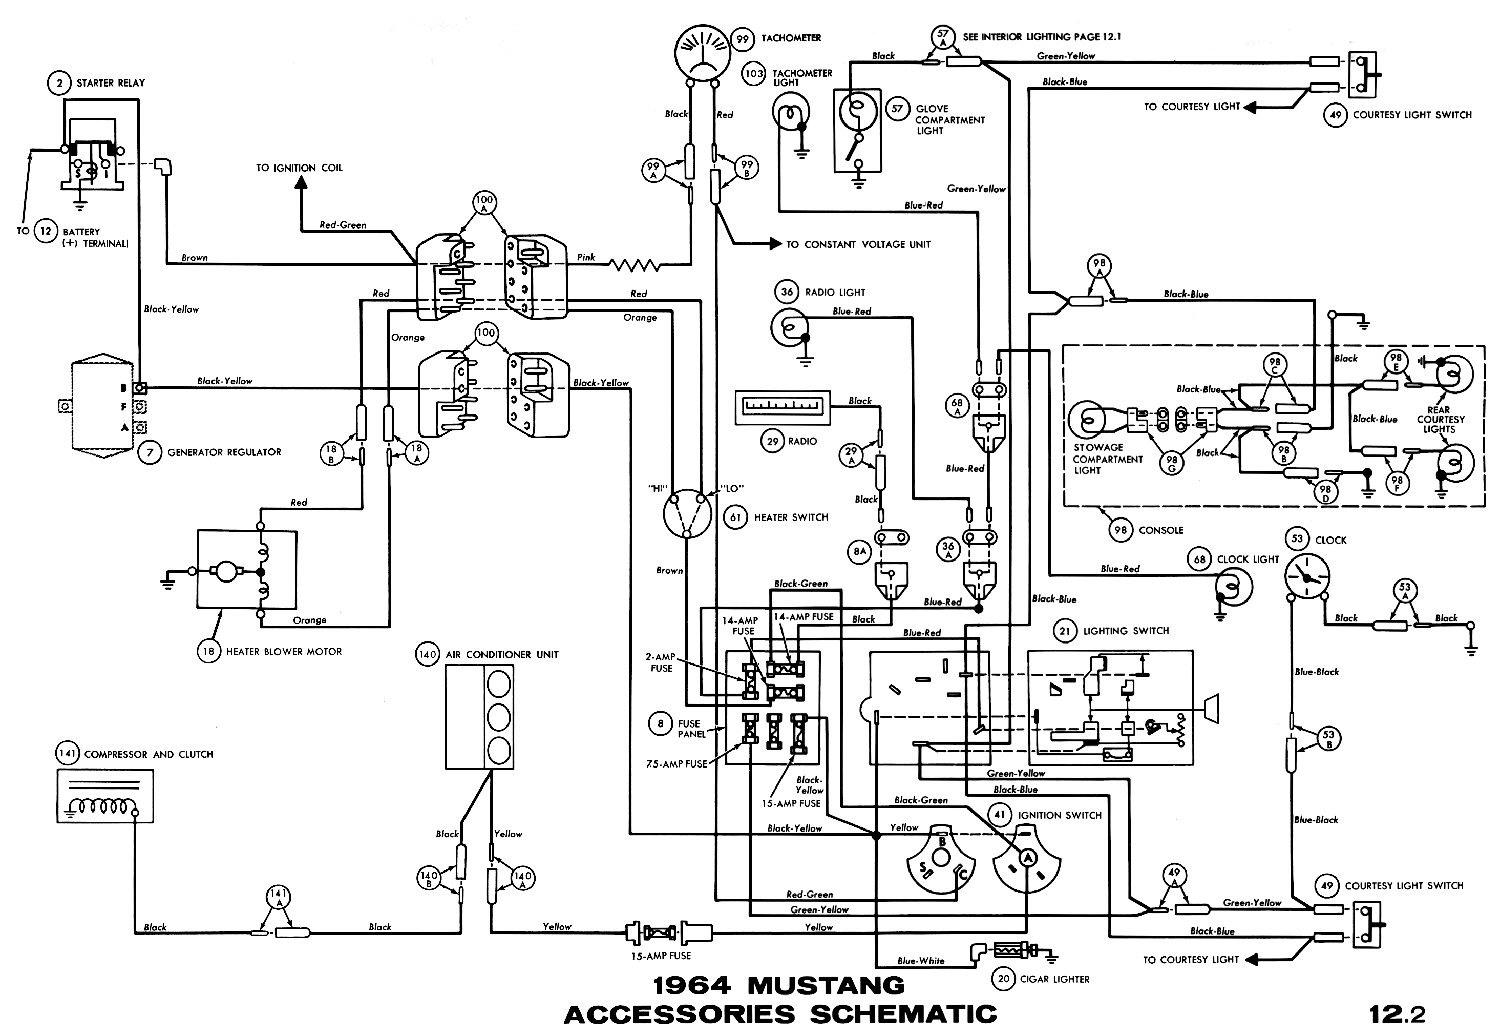 1969 mustang ignition wiring diagram 66 mustang coil wiring diagram wiring diagram data  66 mustang coil wiring diagram wiring